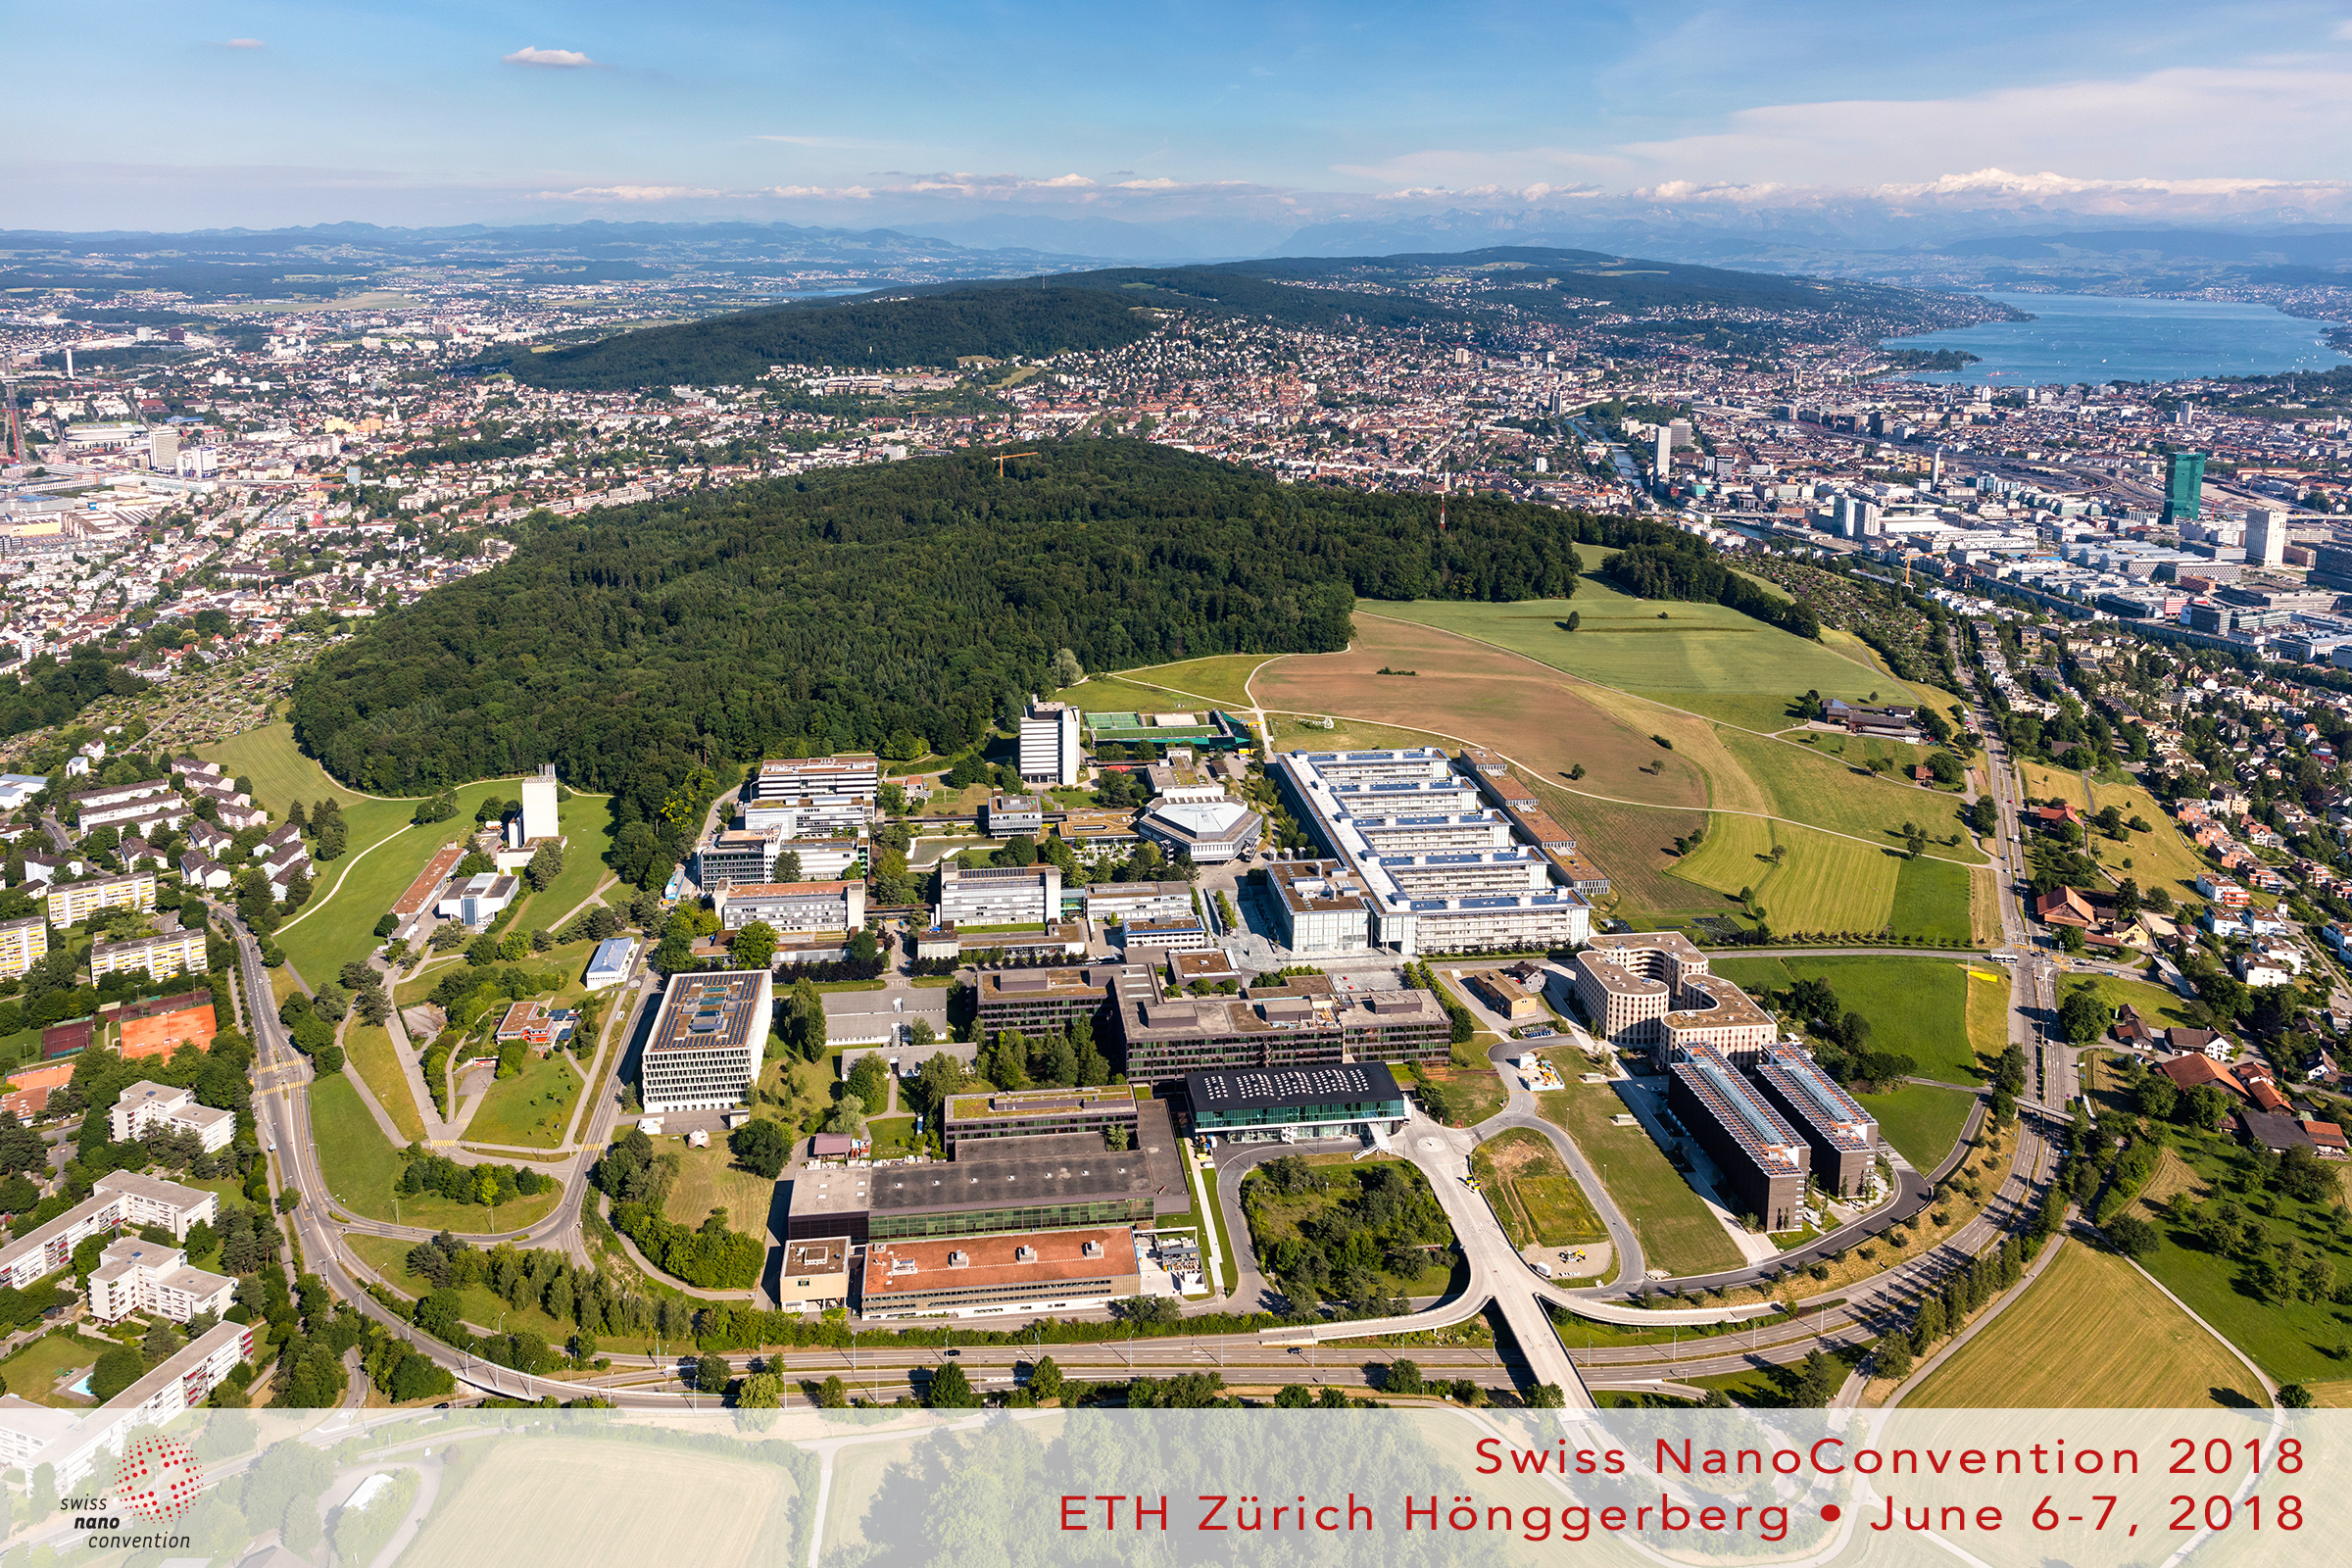 Panorama landscape view over ETH Zürich Hönggerberg for the Swiss NanoConvention 2018